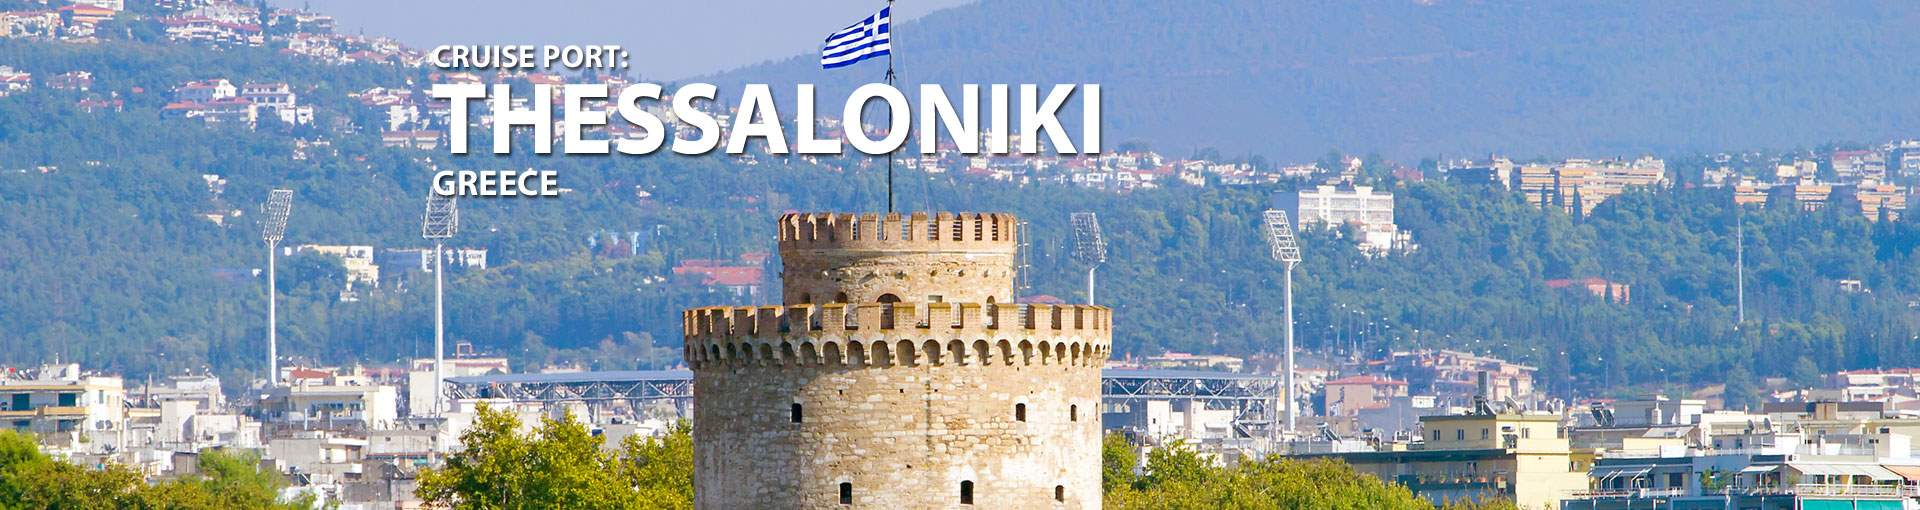 Cruises to Thessaloniki, Greece